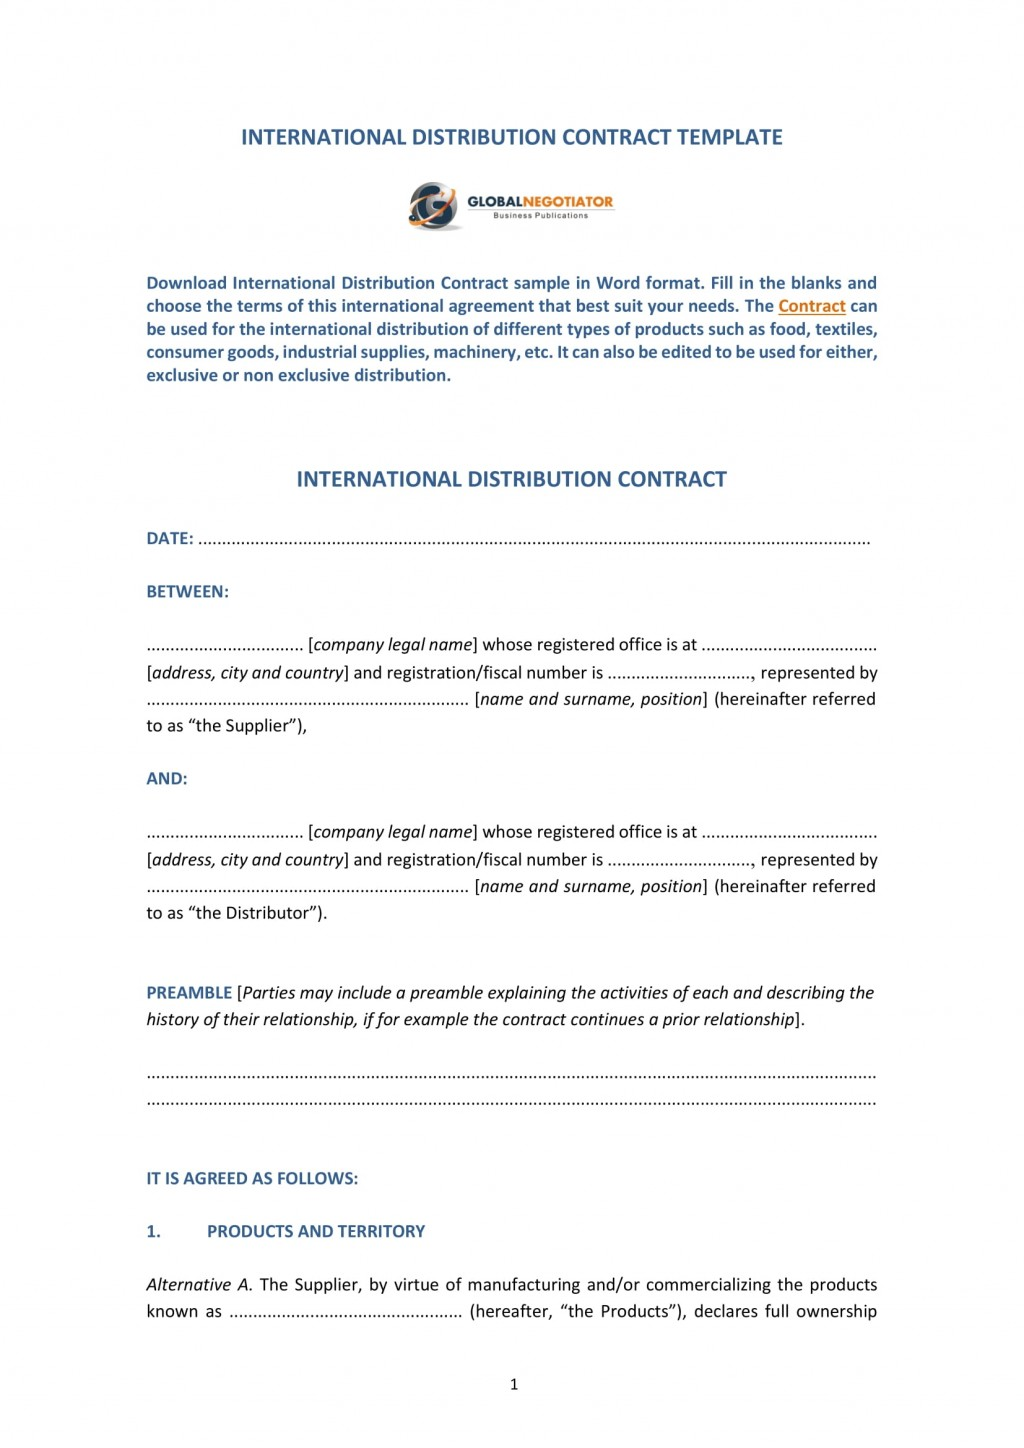 009 Amazing Distribution Agreement Template Word Image  Exclusive DistributorLarge